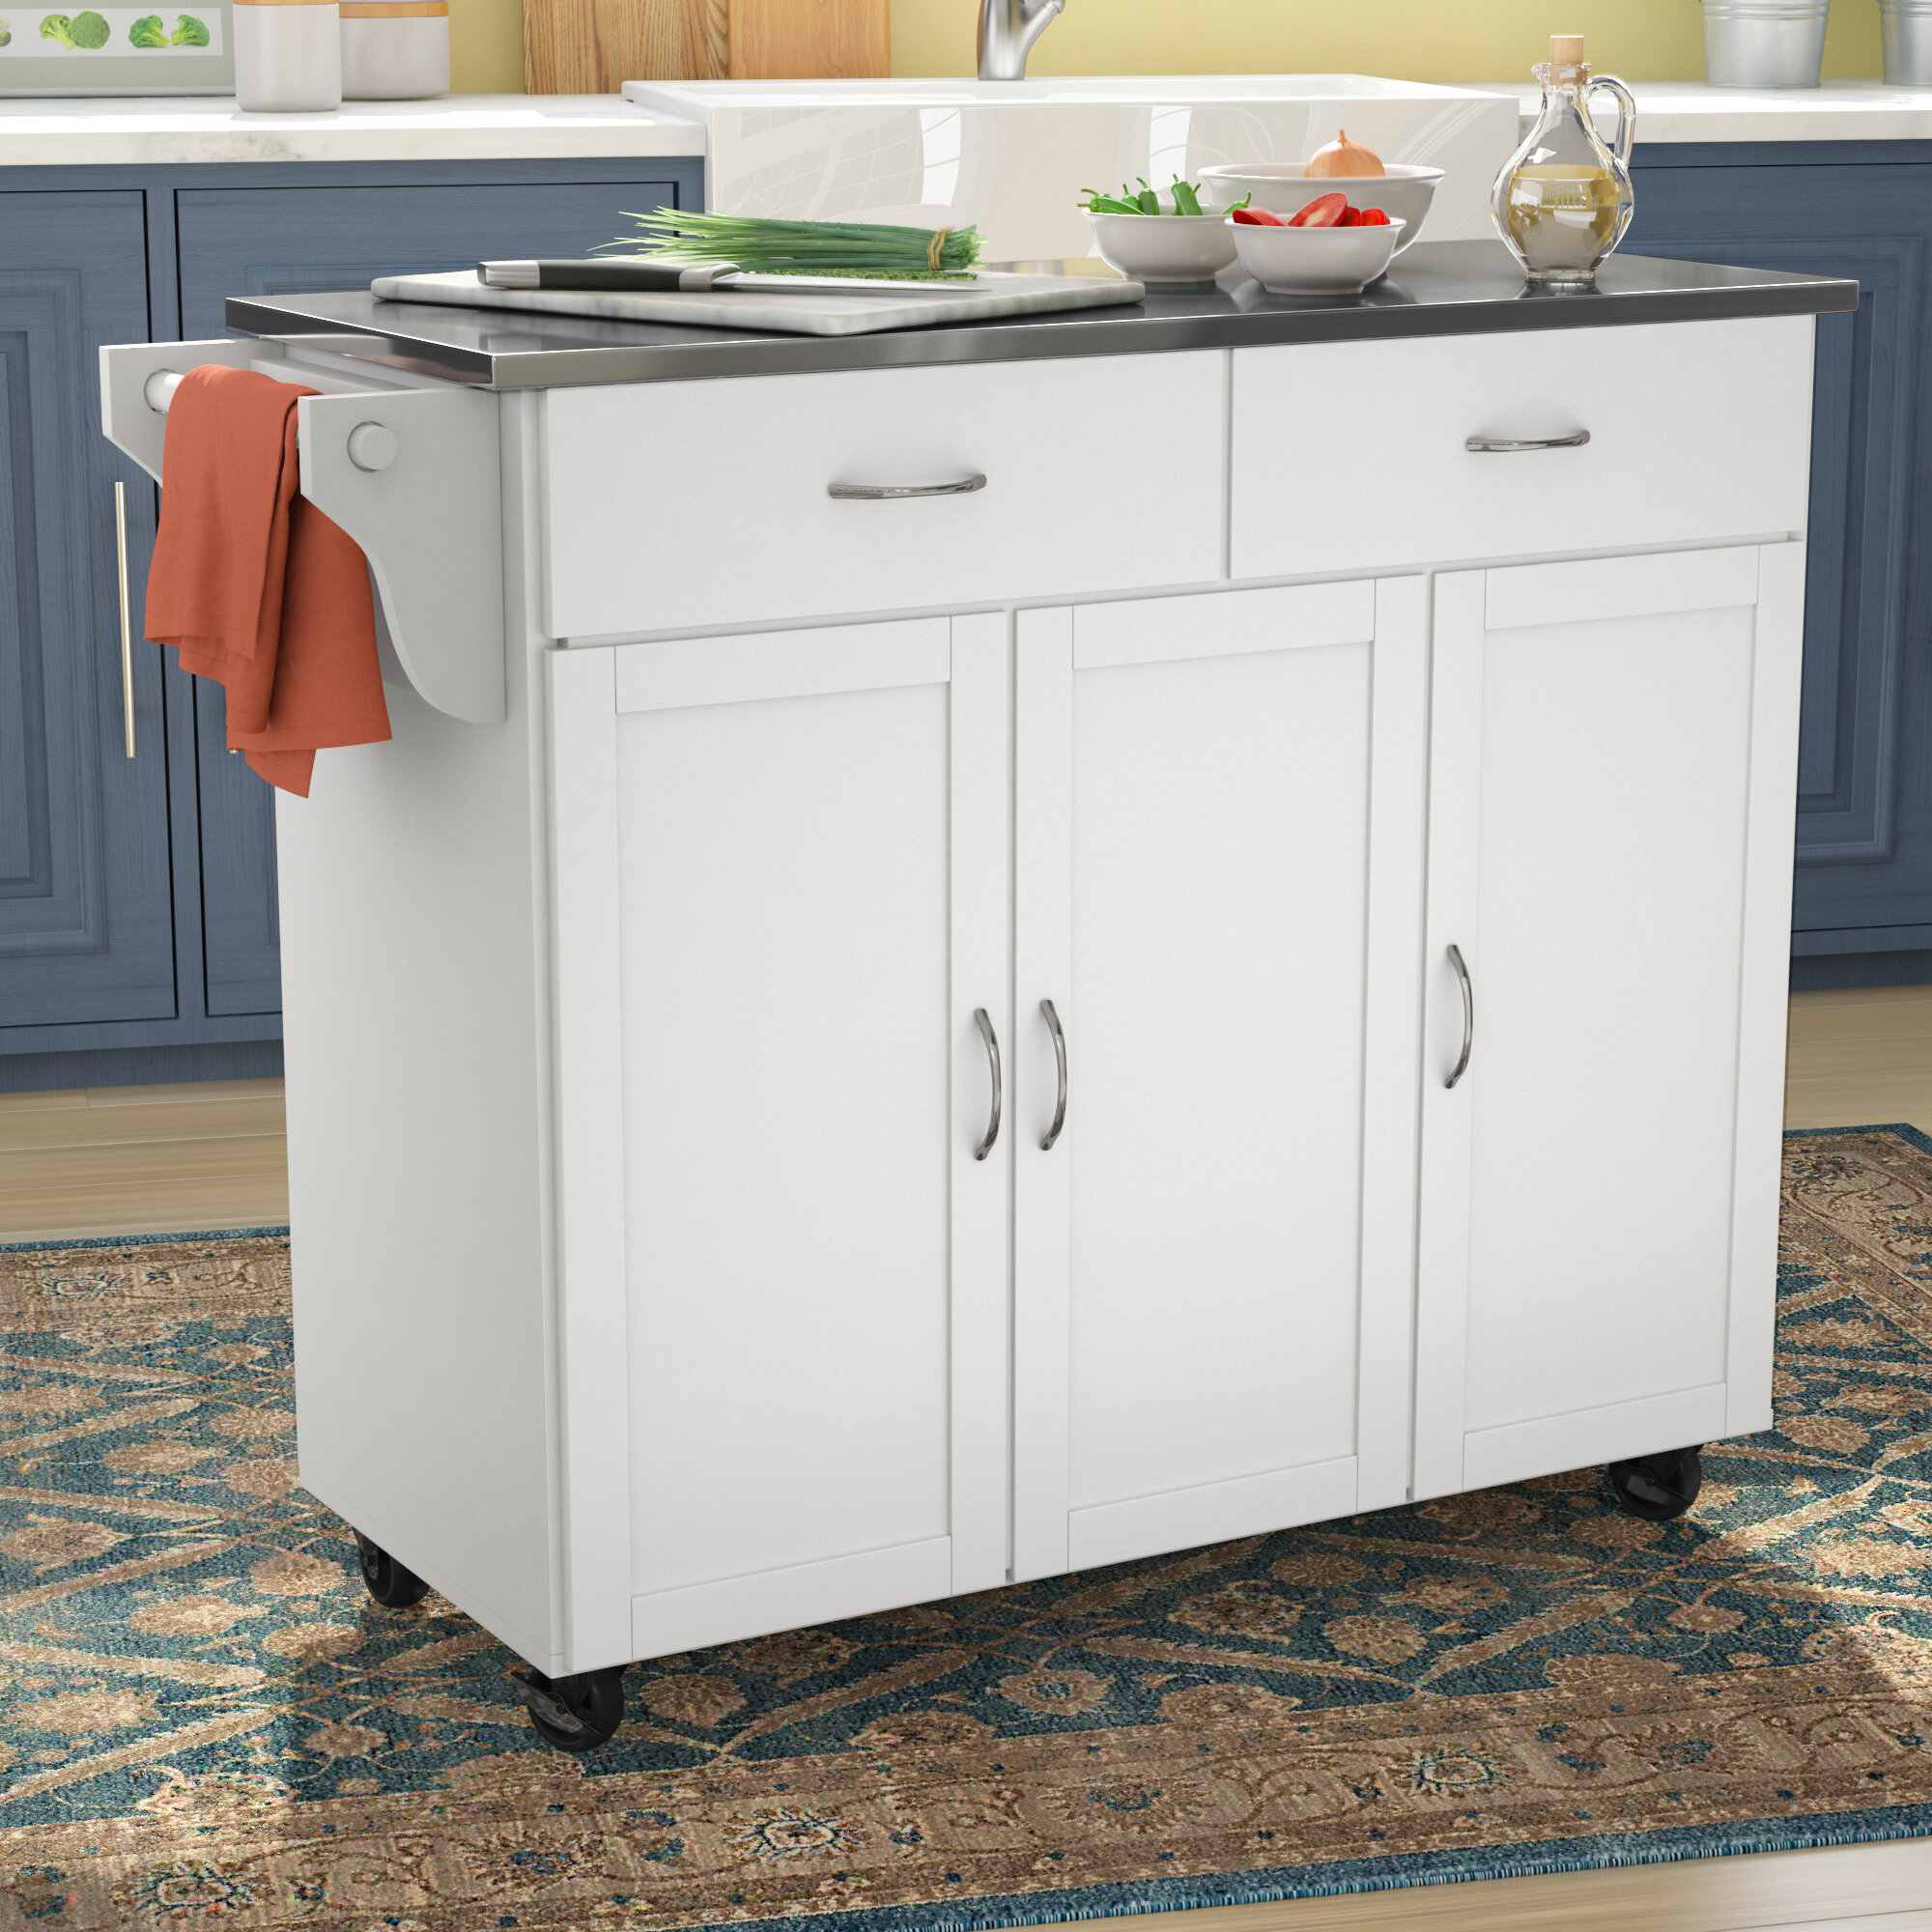 Red Barrel Studio Garrettsville Kitchen Island With Stainless Steel Top Reviews Wayfair